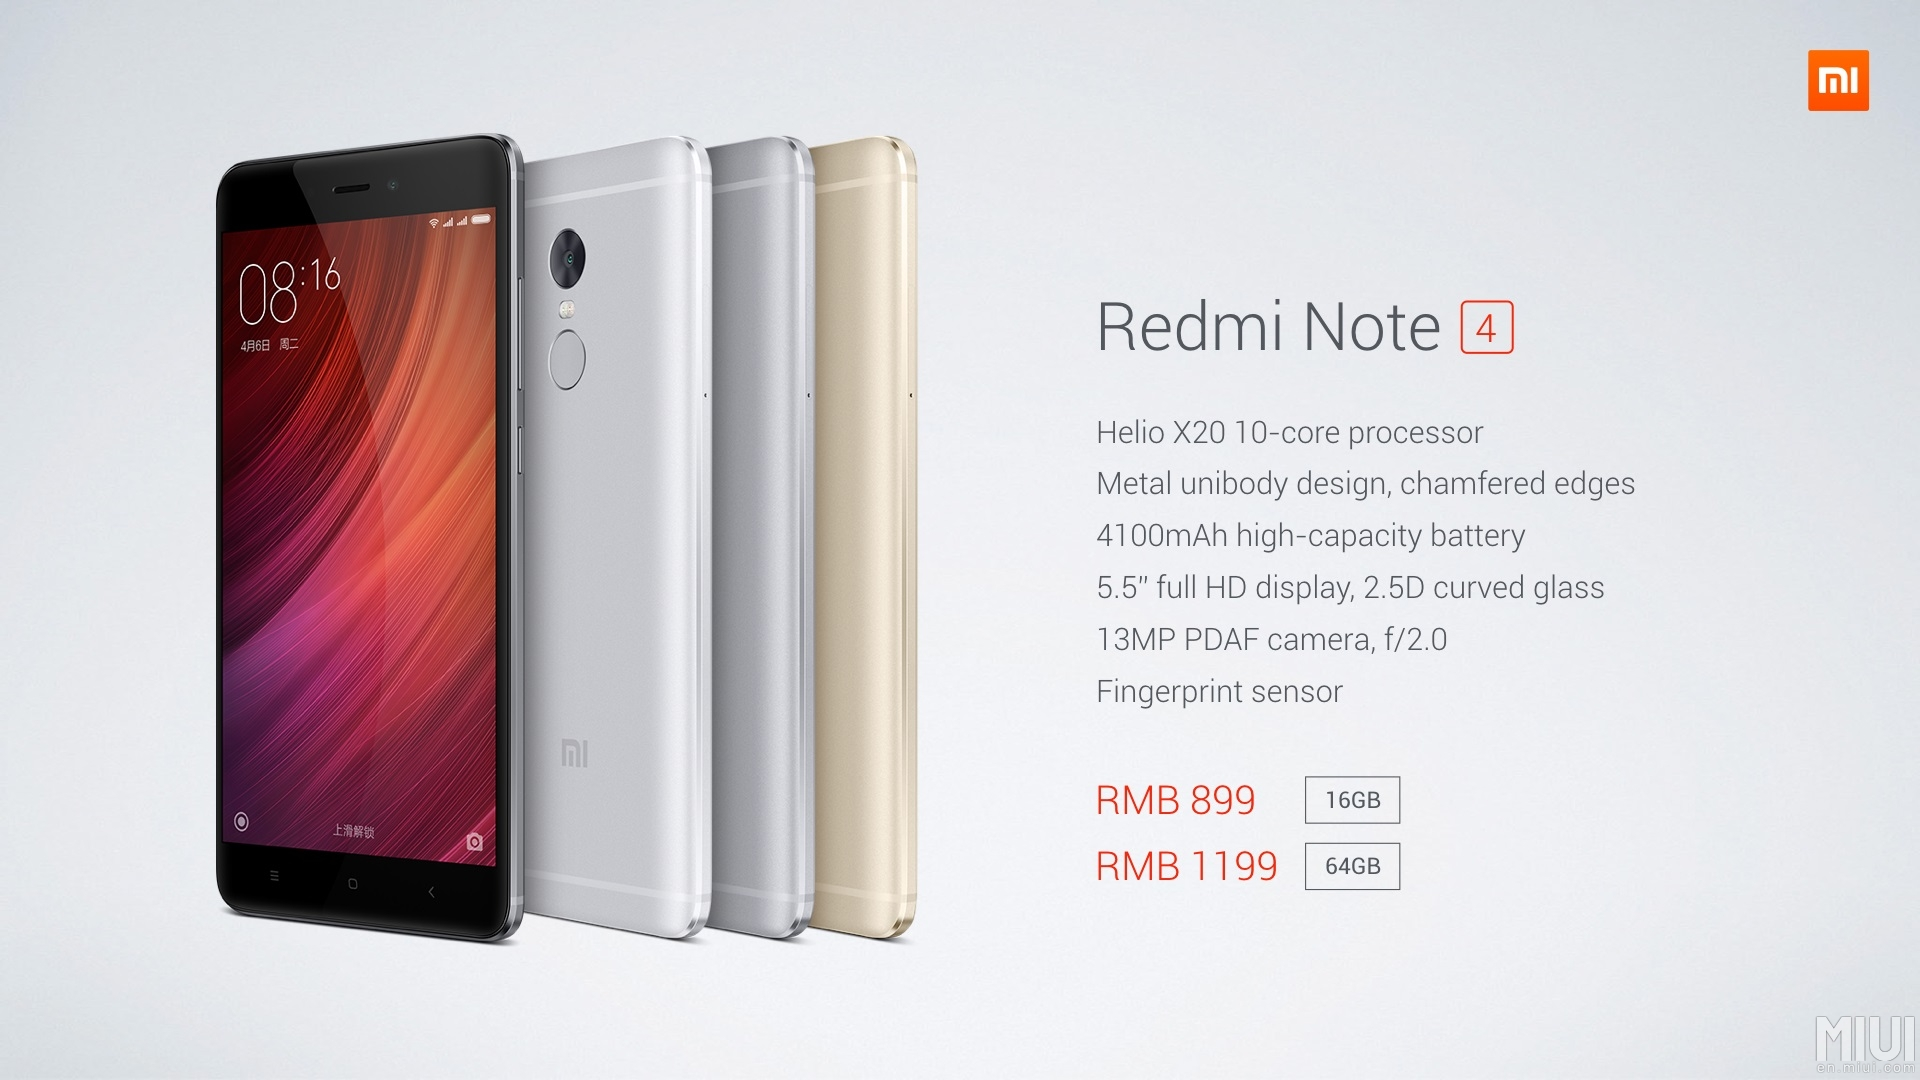 Xiaomi Launches Redmi Note 4 In China 3 Pro 32 Gb Gold